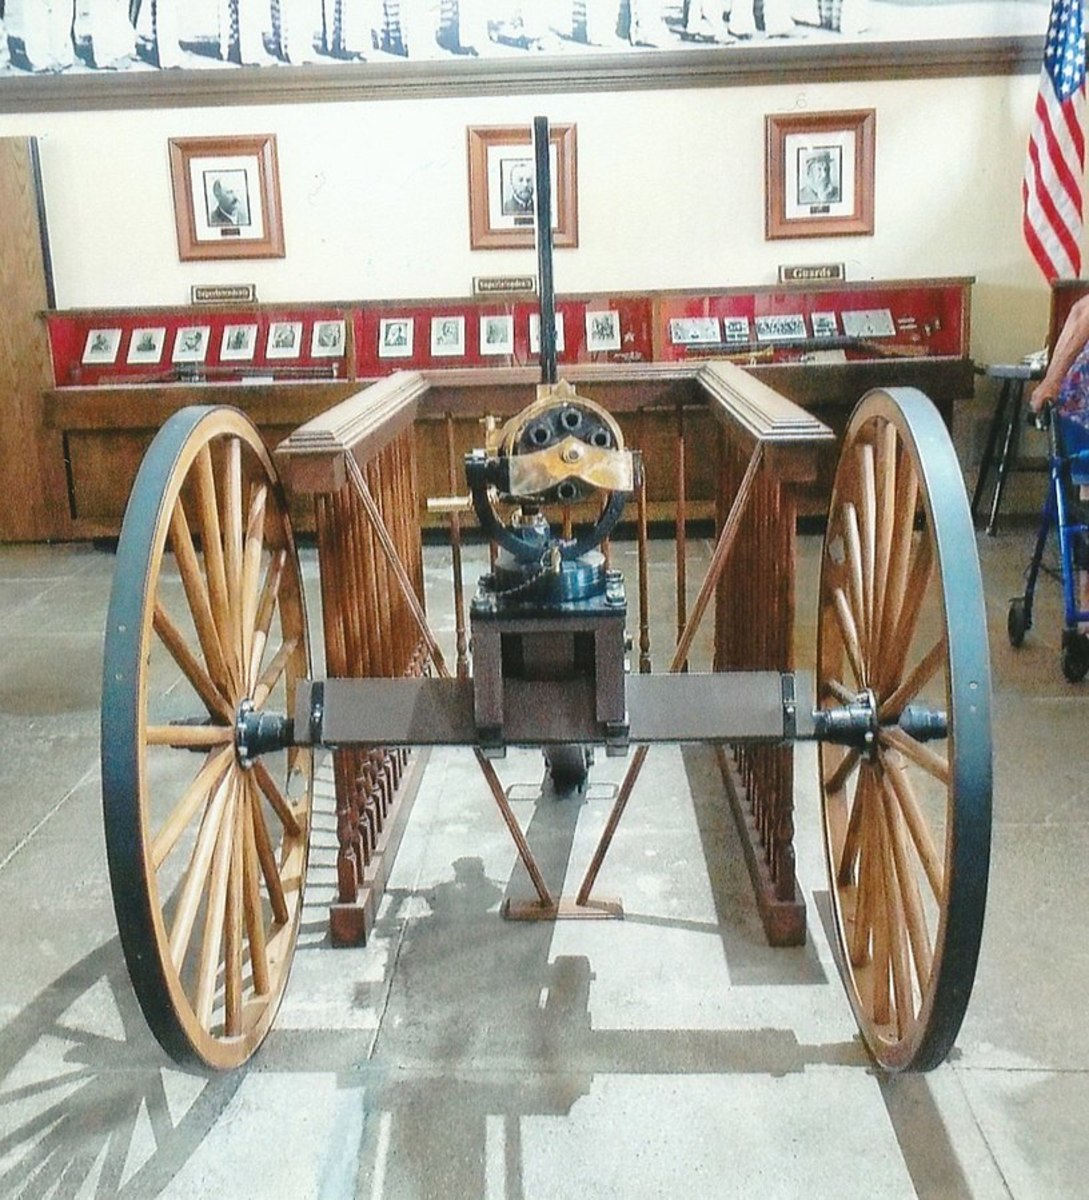 Gatling Gun used by the Yuma Territorial Prison guards